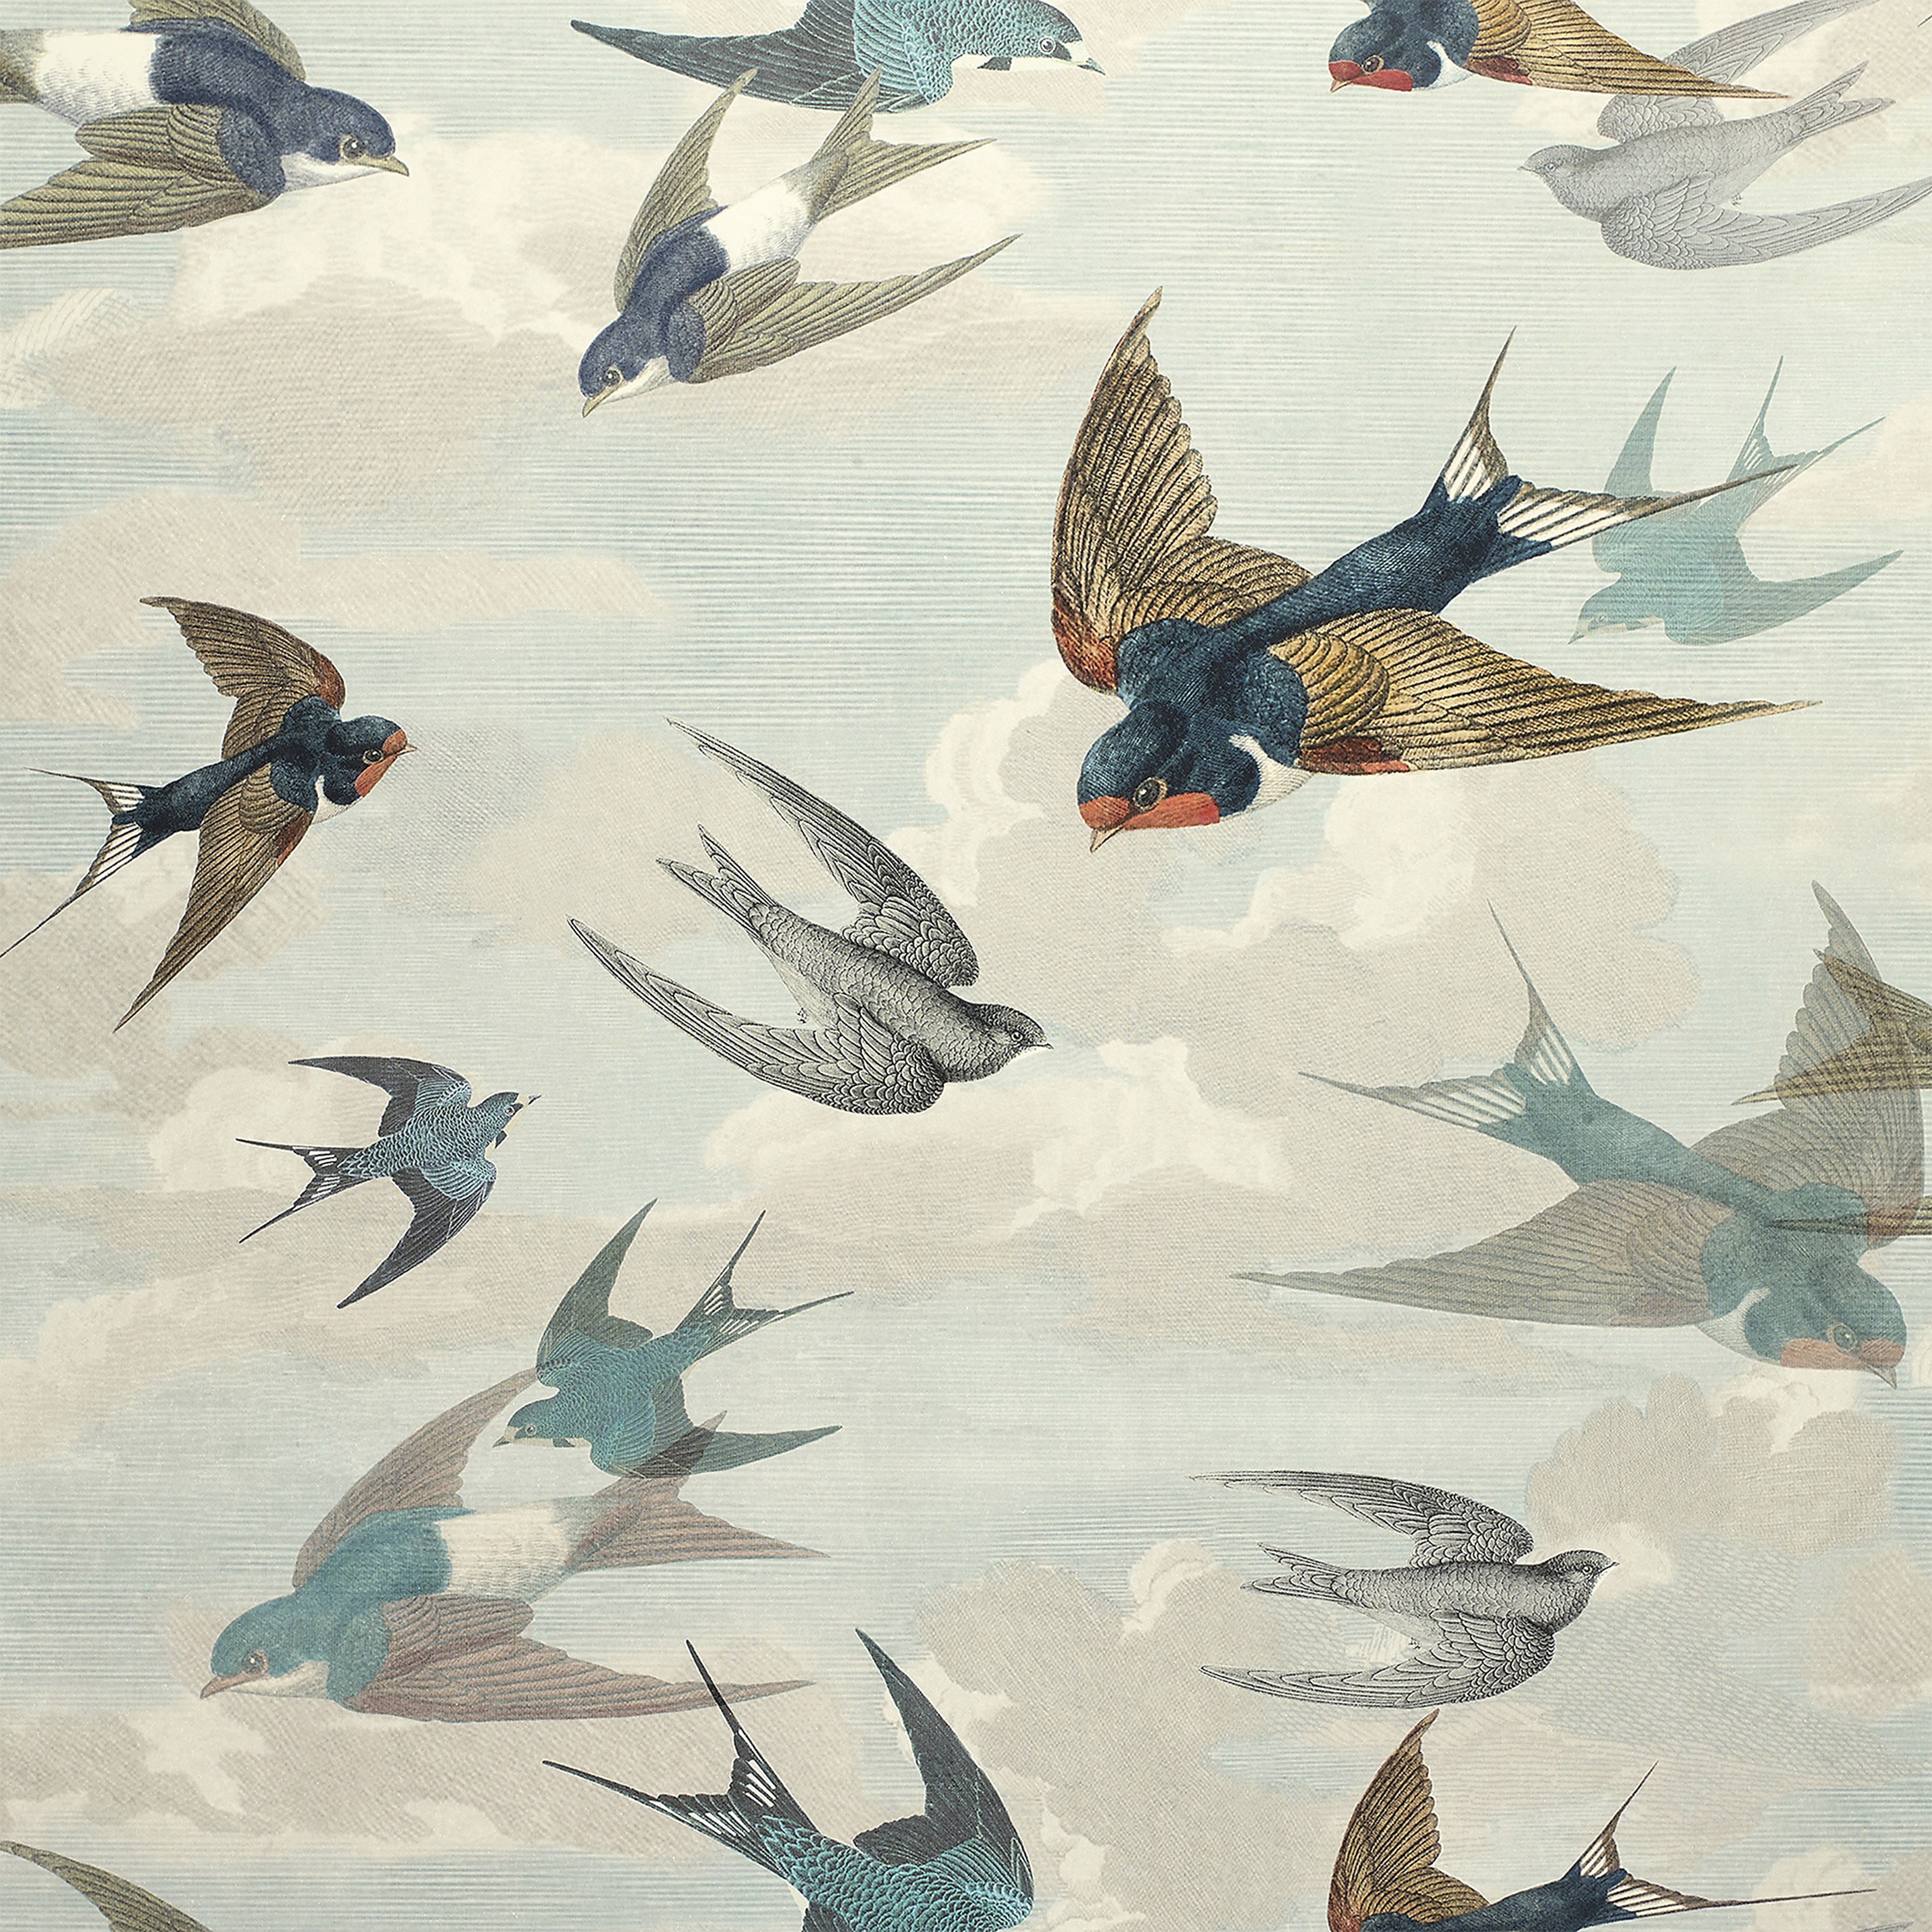 Chimney Swallows by Designers Guild